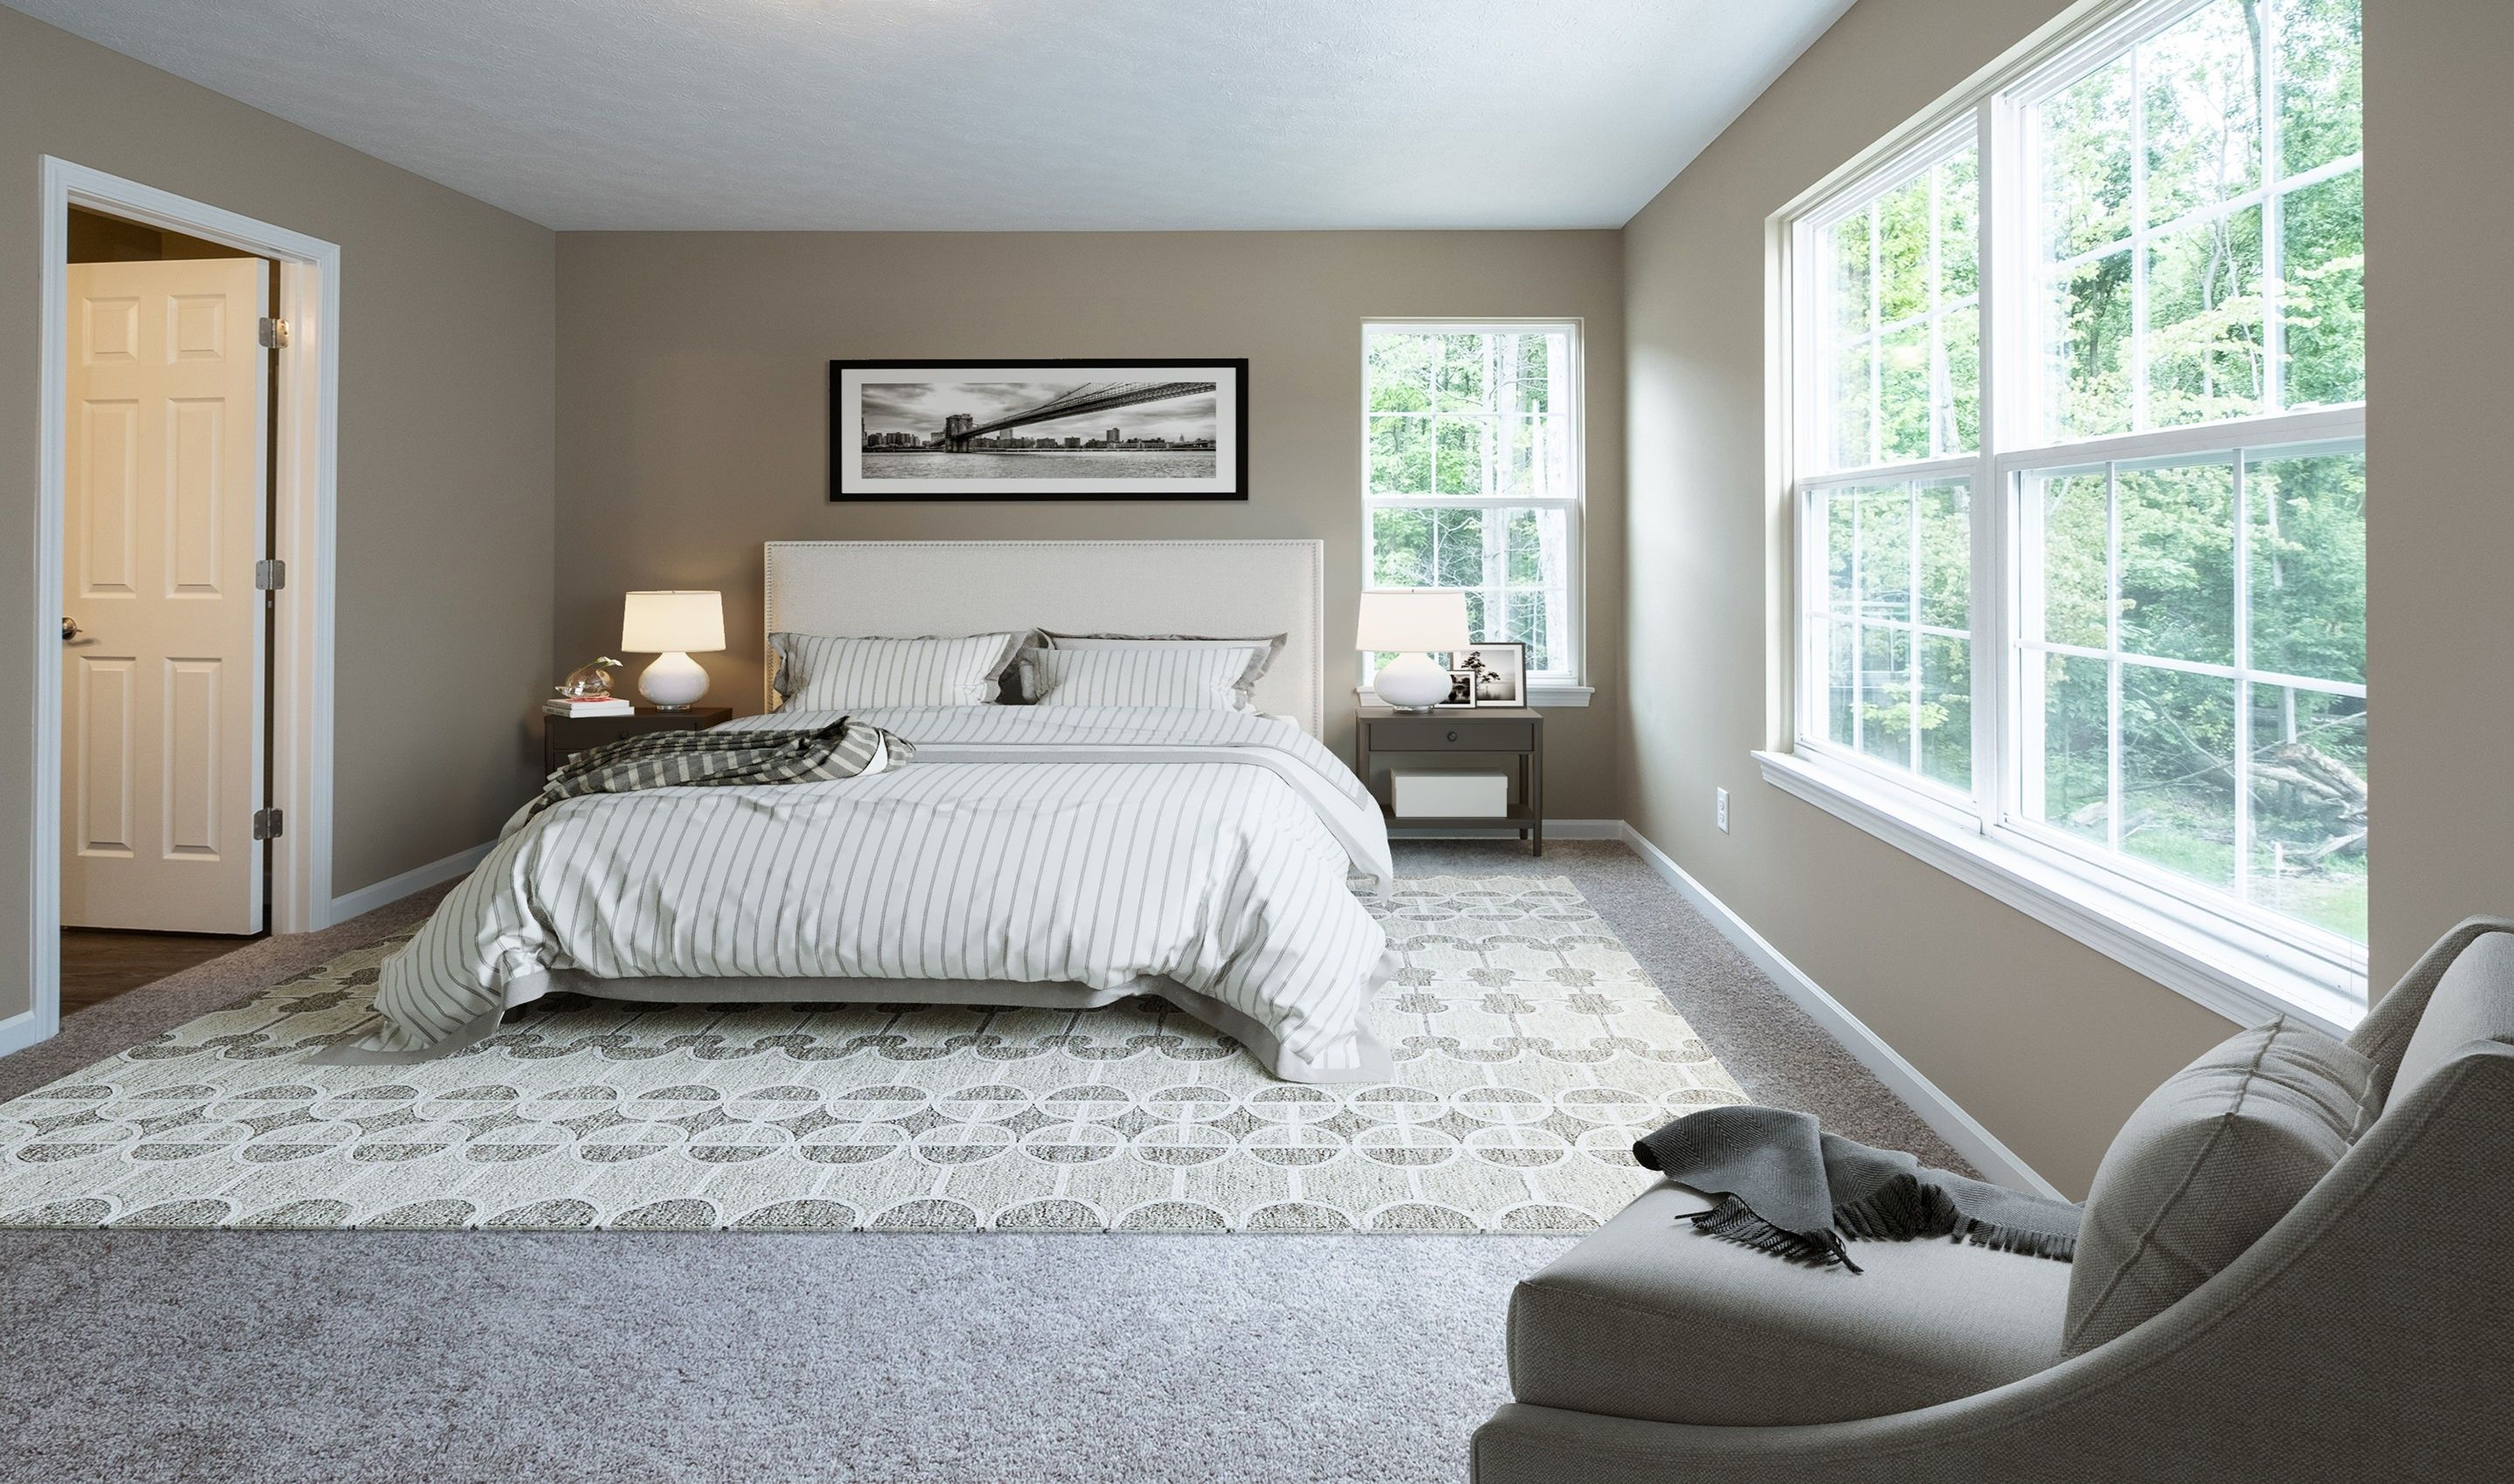 Bedroom featured in the Brantwood By K. Hovnanian® Homes in Cleveland, OH